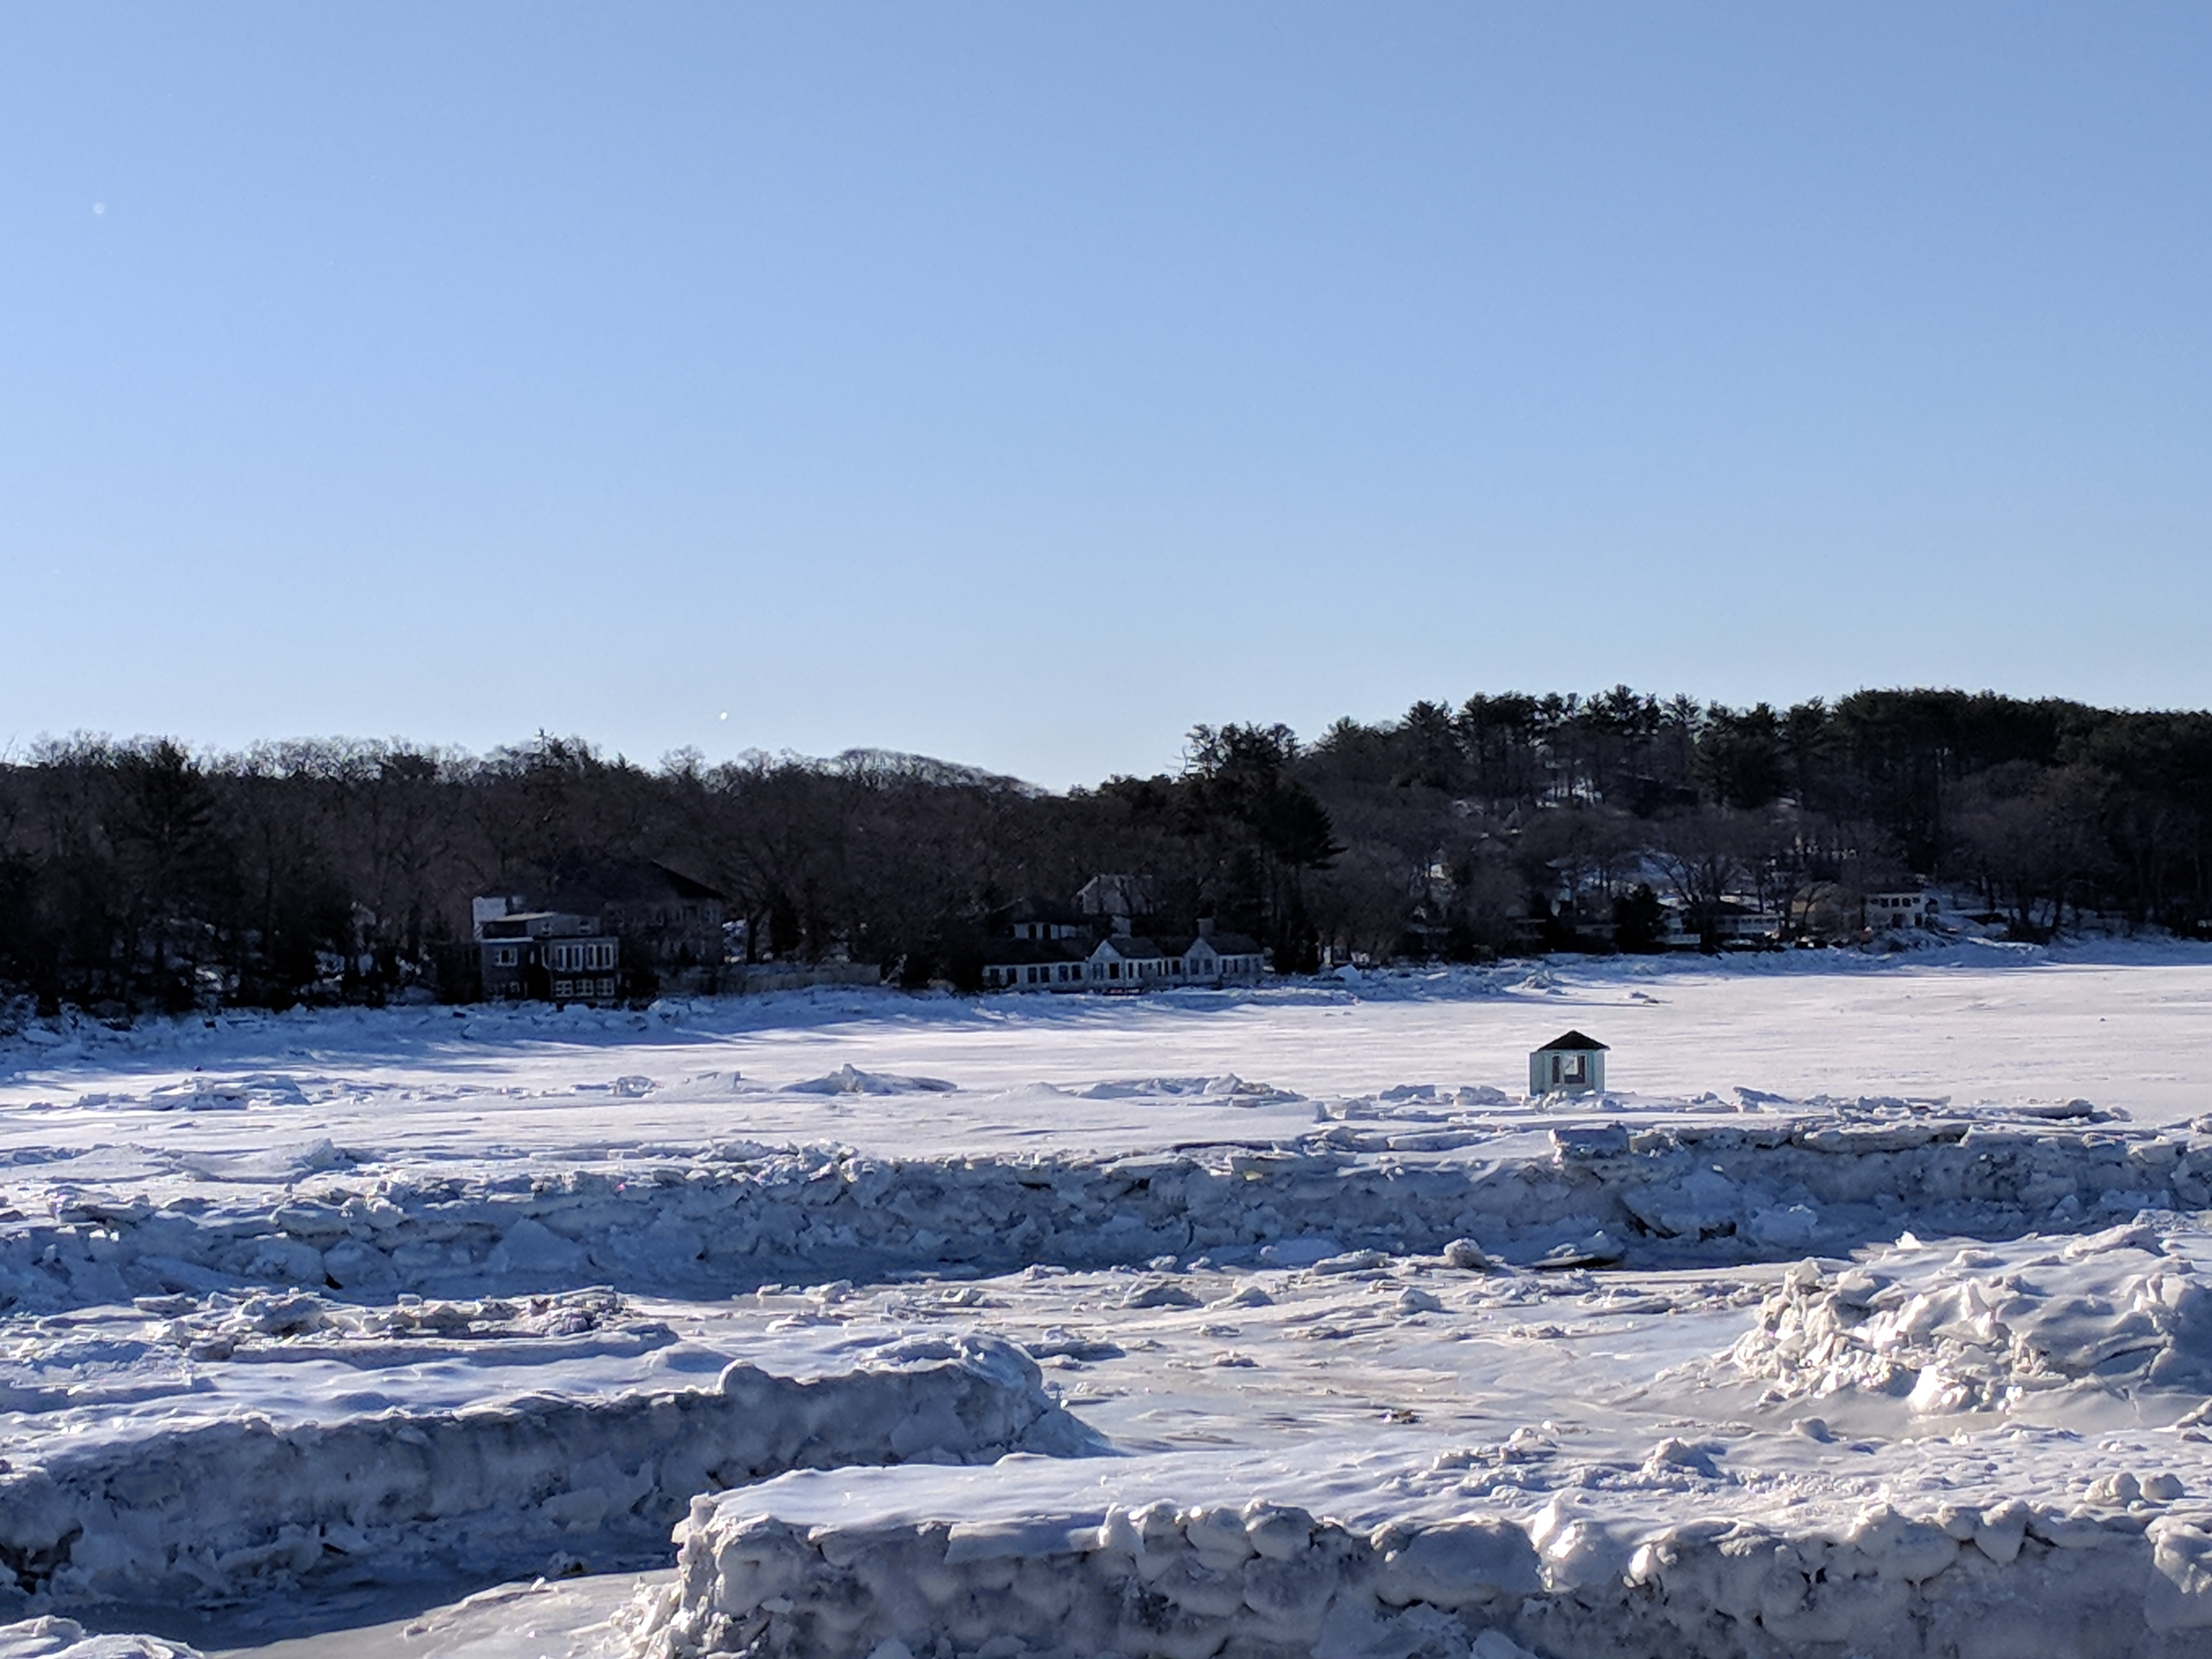 Little house boat in the great frozen salt marsh - Gloucester MA January 7 2018 three days after historic winter storm © c ryan_095245